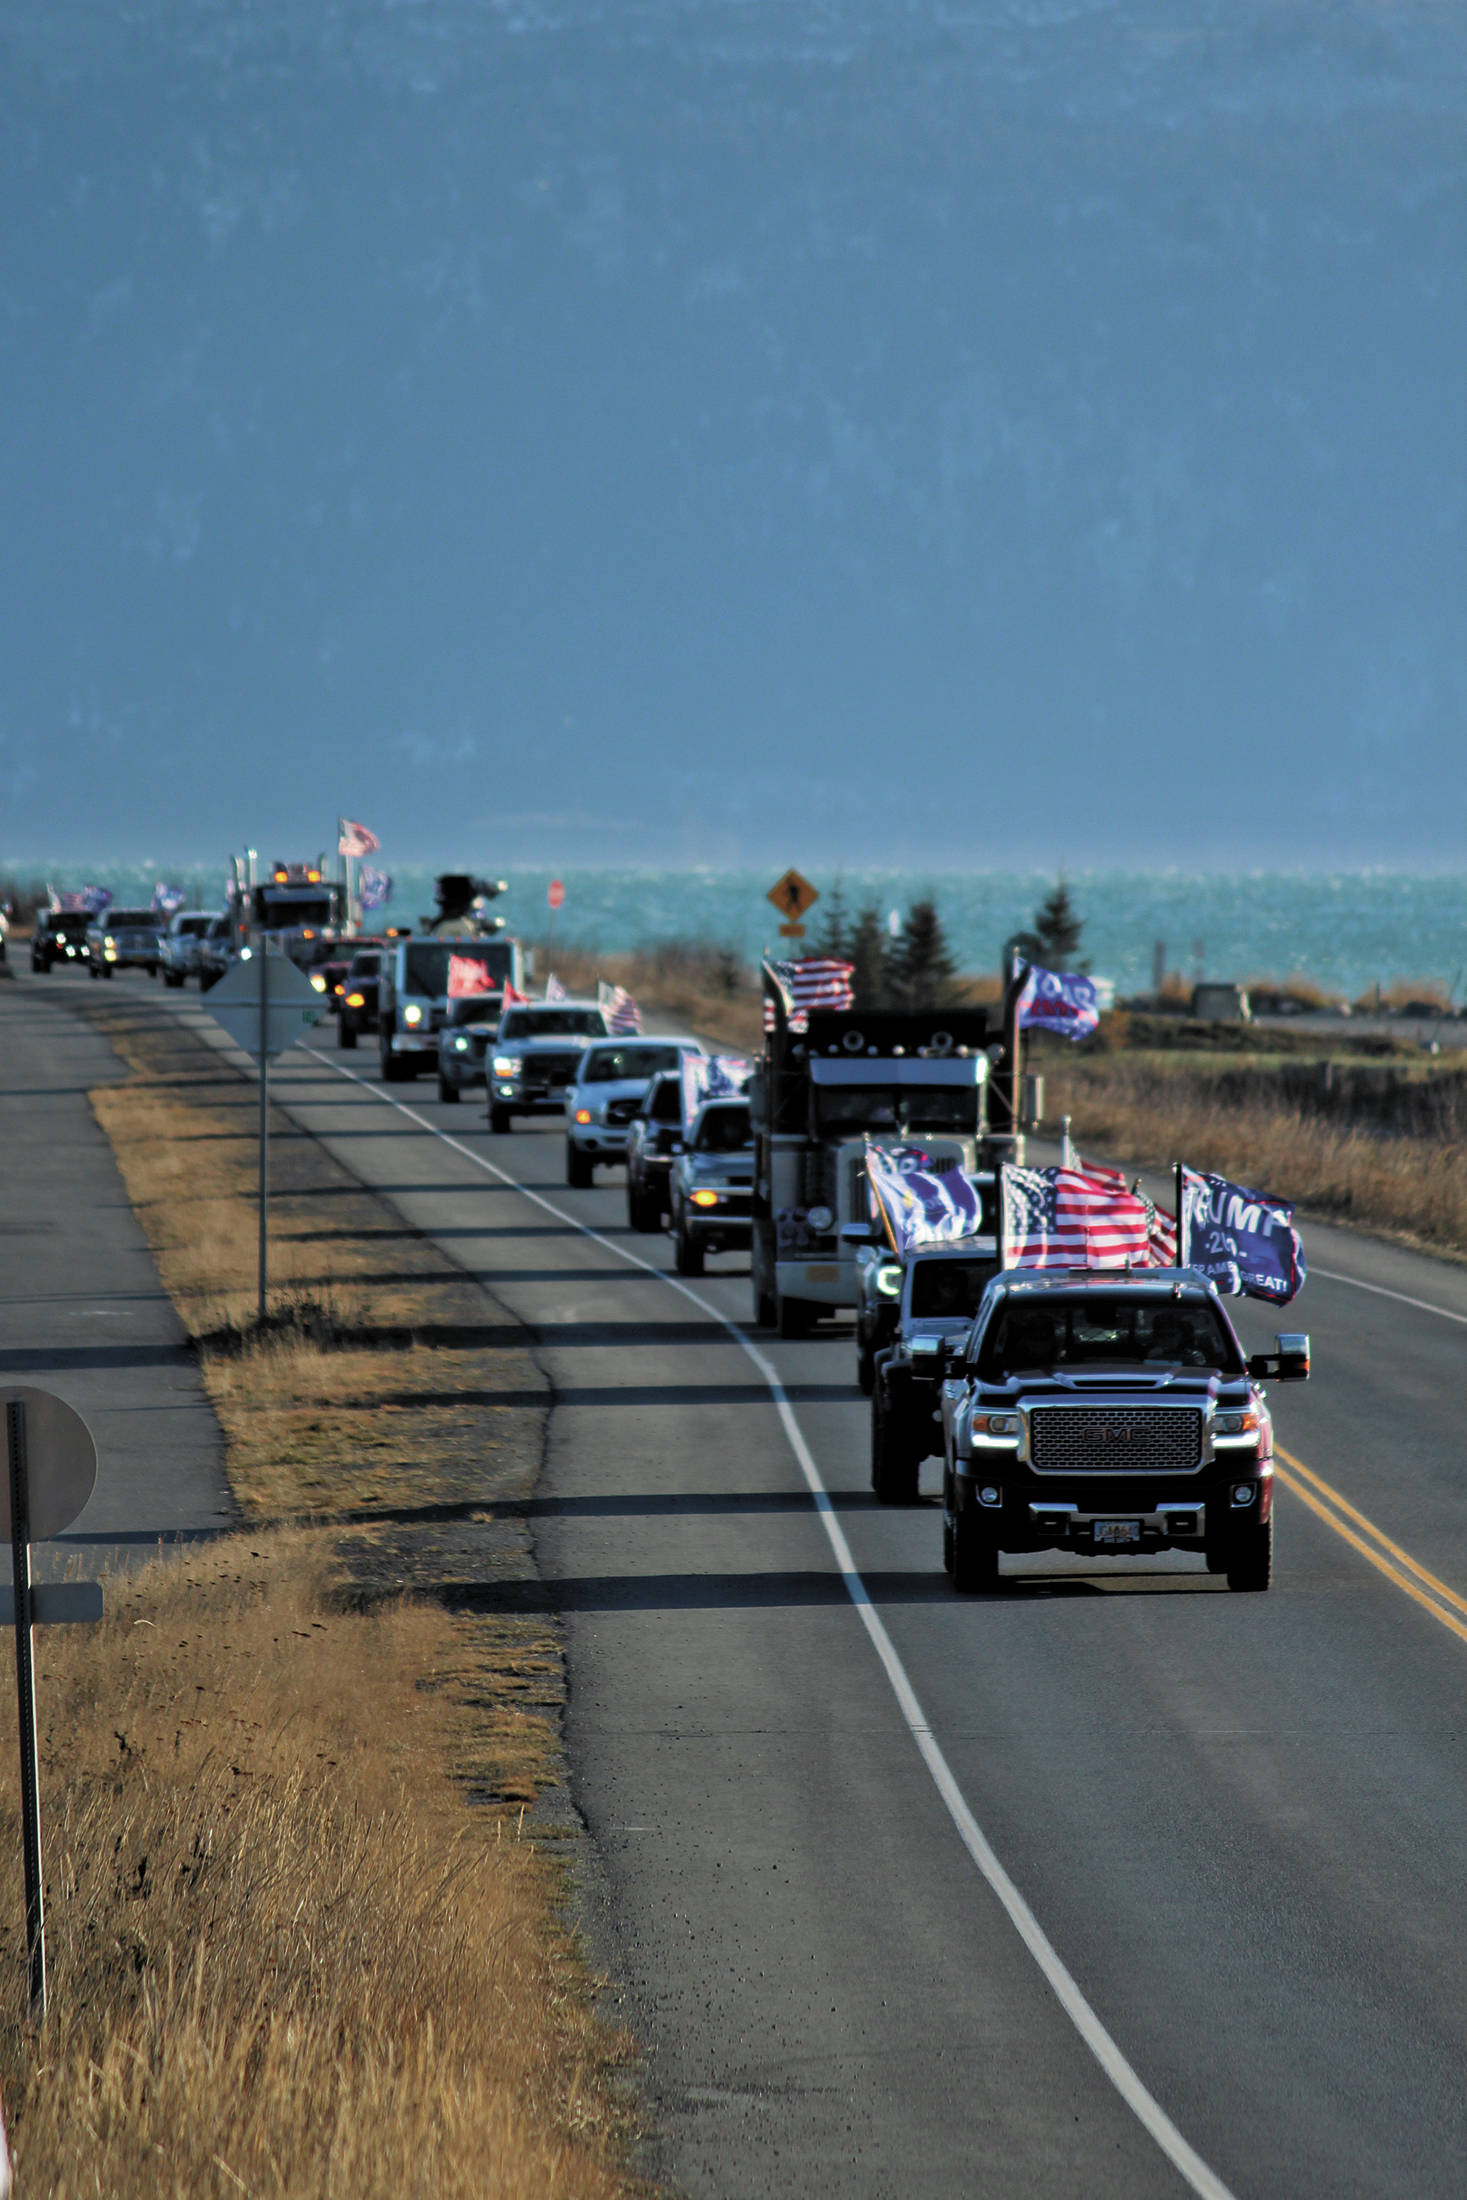 Participants in a vehicle parade to support President Donald Trump make their way off the Homer Spit on Sunday, Nov. 1, 2020 in Homer, Alaska. Organized by a Homer resident, the event was not part of similar parades that took place across the state and country over the weekend. (Photo by Megan Pacer/Homer News)